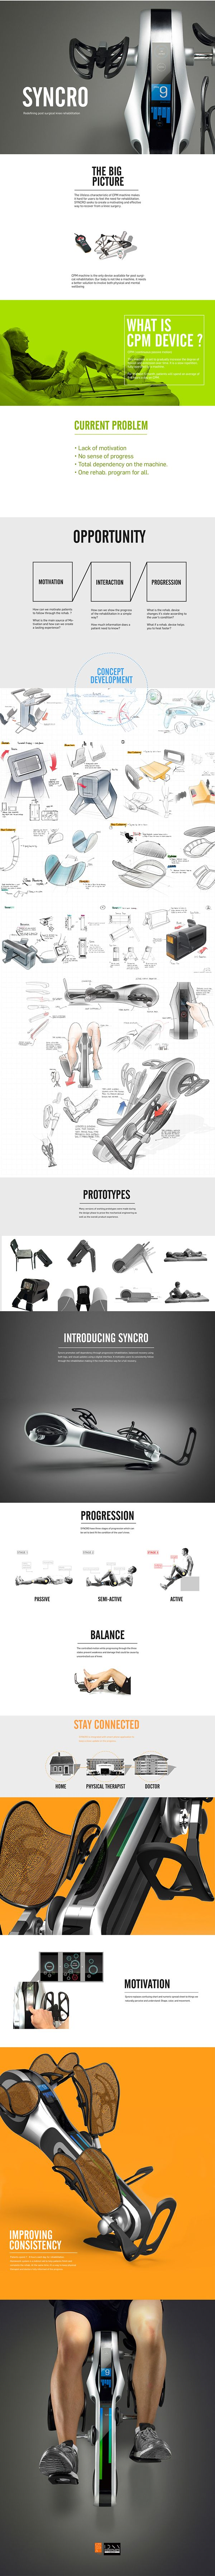 SYNCRO on Behance